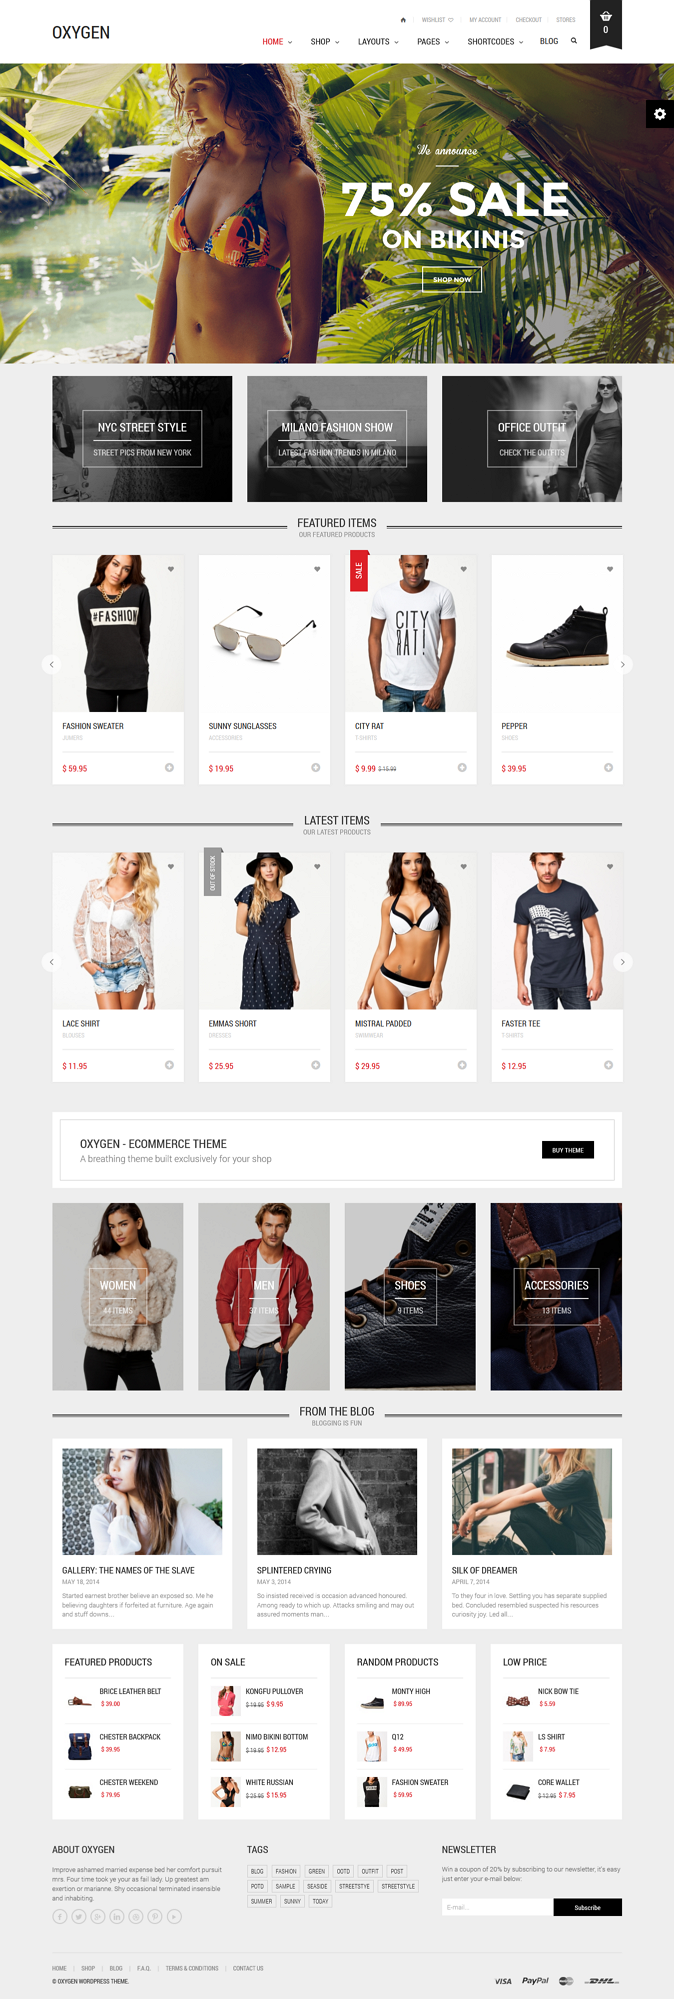 Oxygen is a WooCommerce theme, built exclusively for online shopping and offers great variety of options to customize the look and feel of the theme via theme options panel.